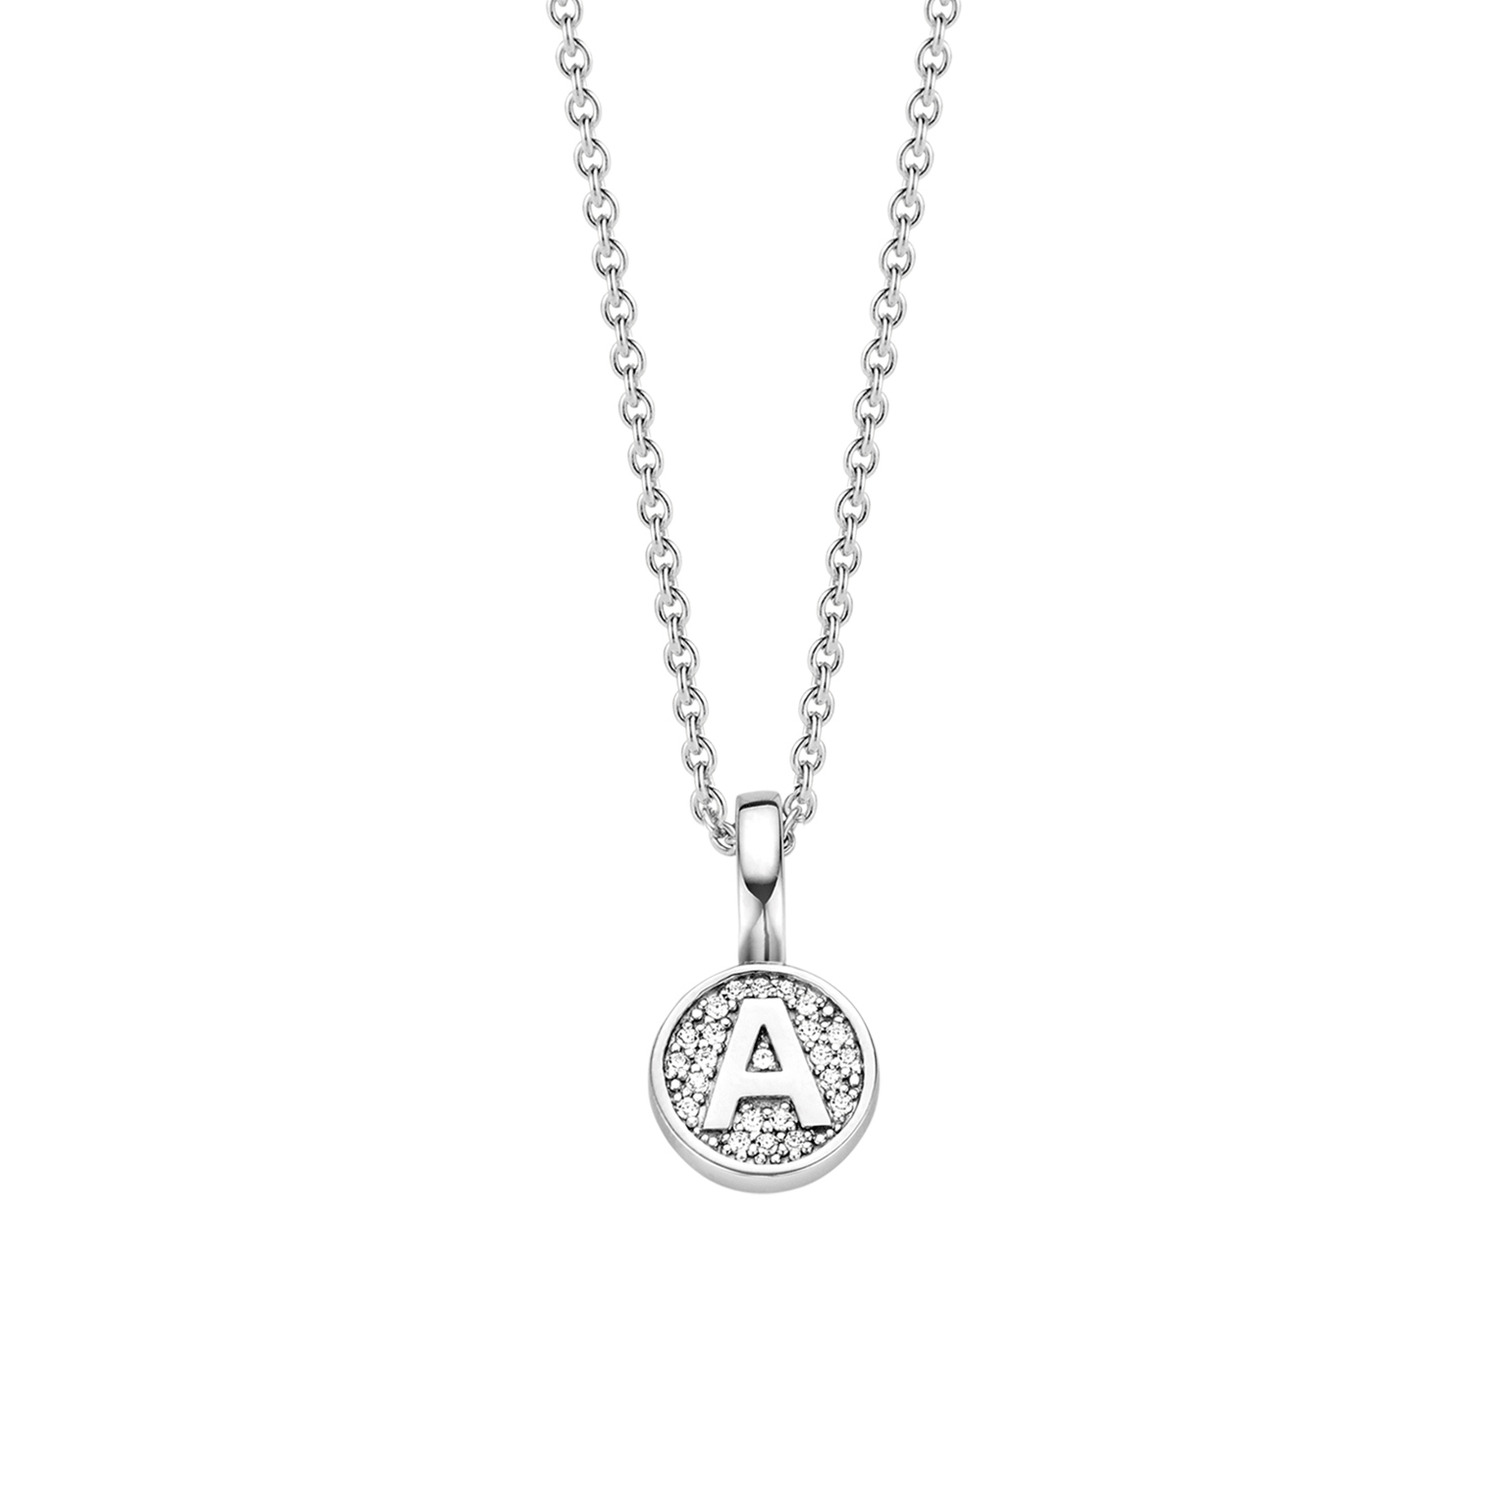 TI SENTO - Milano Necklace 3858LA